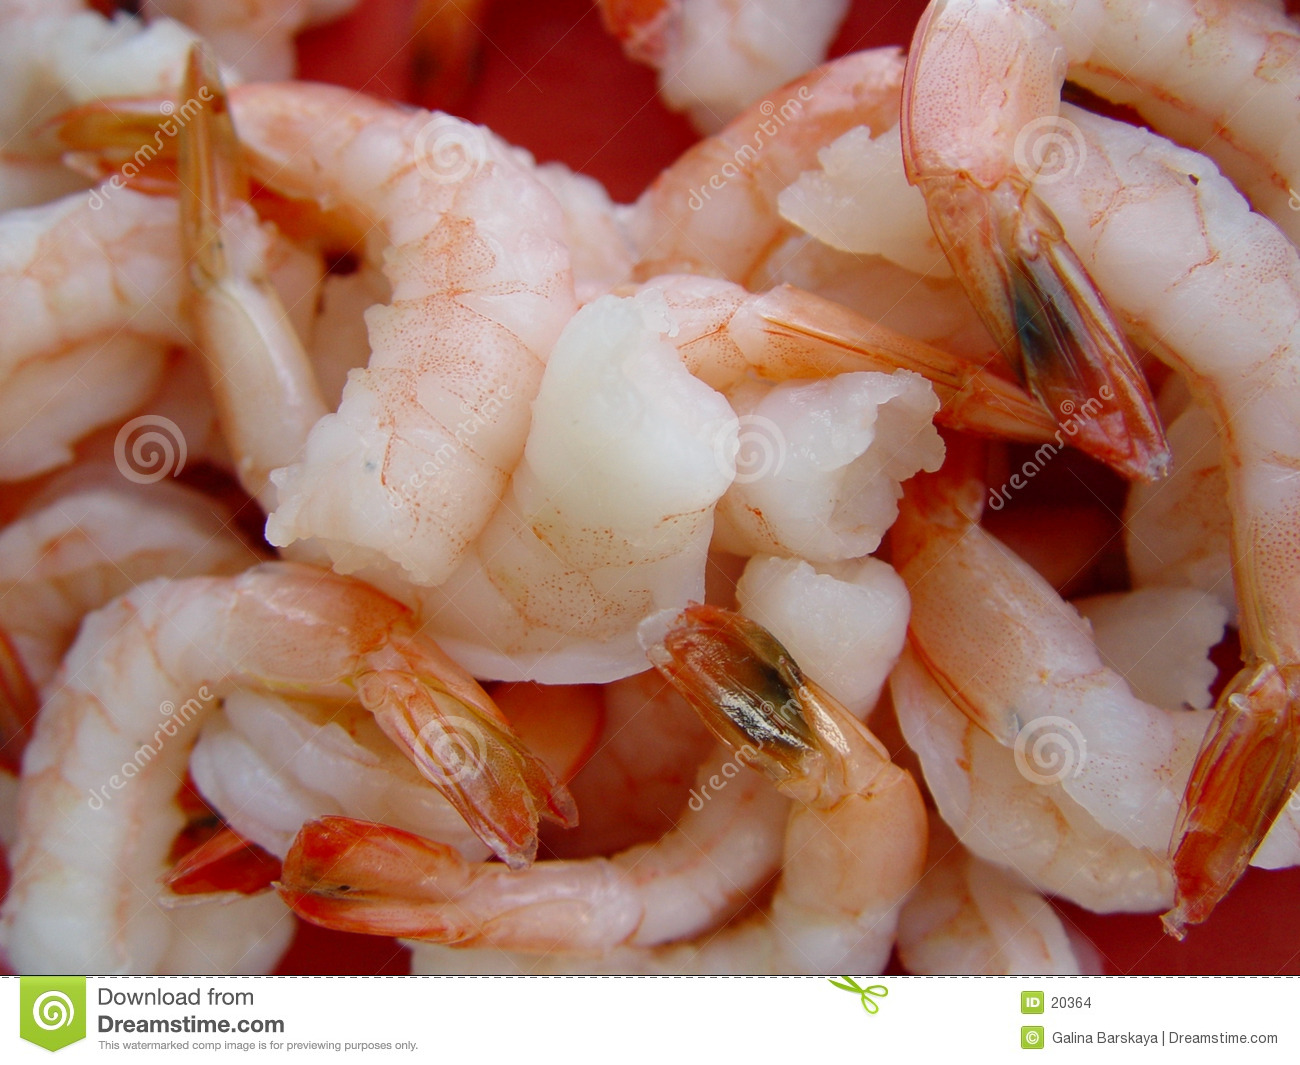 Background of cooked shrimp